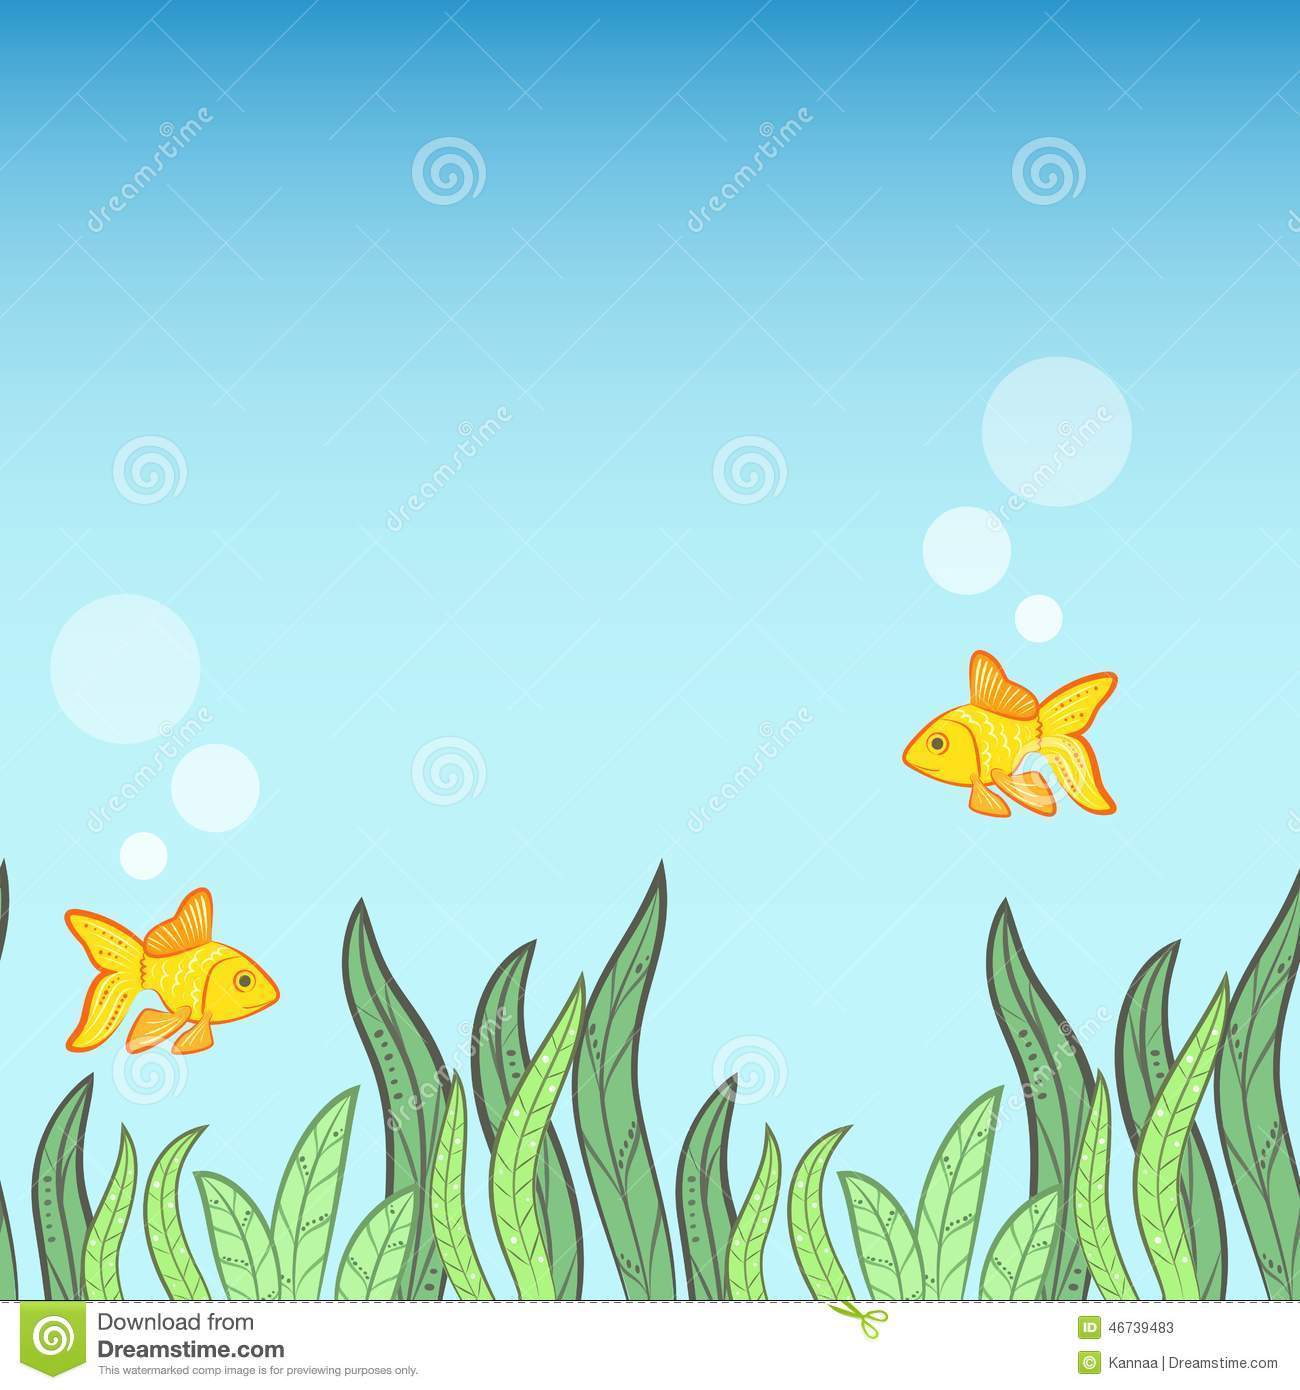 Cute Paw Print Wallpaper Underwater Game Background Stock Vector Illustration Of